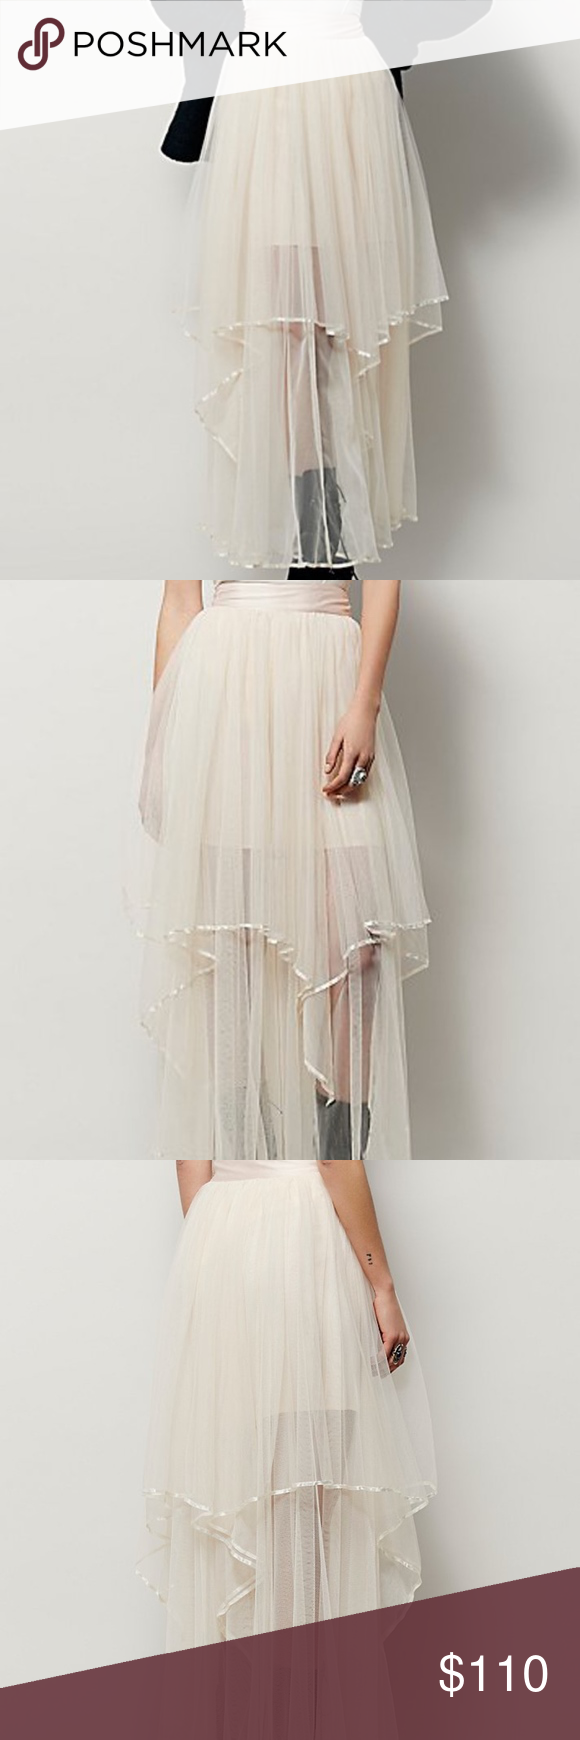 8d6334948 NWT FREE PEOPLE KEEP ME TUTU MAXI SKIRT Tutu inspired double layered maxi  skirt featuring a silky trim and waistband. Hidden side zip closure with a  ...